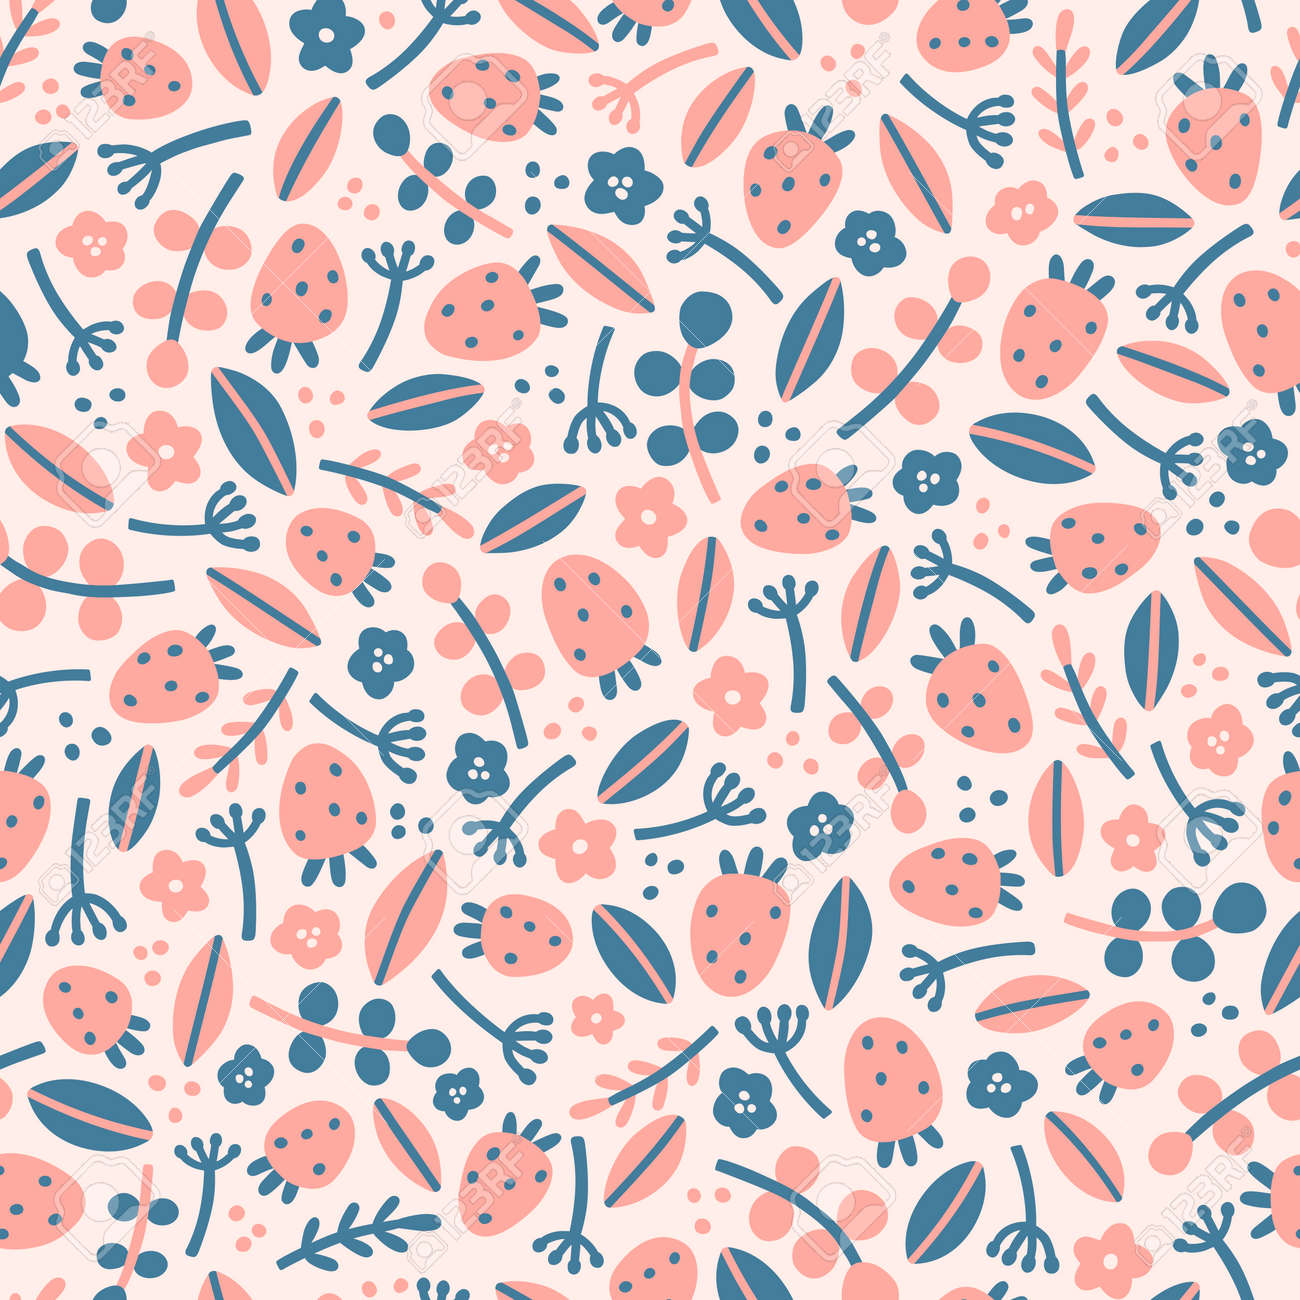 Cute strawberries and leaves. Vector hand drawn seamless pattern - 168951007